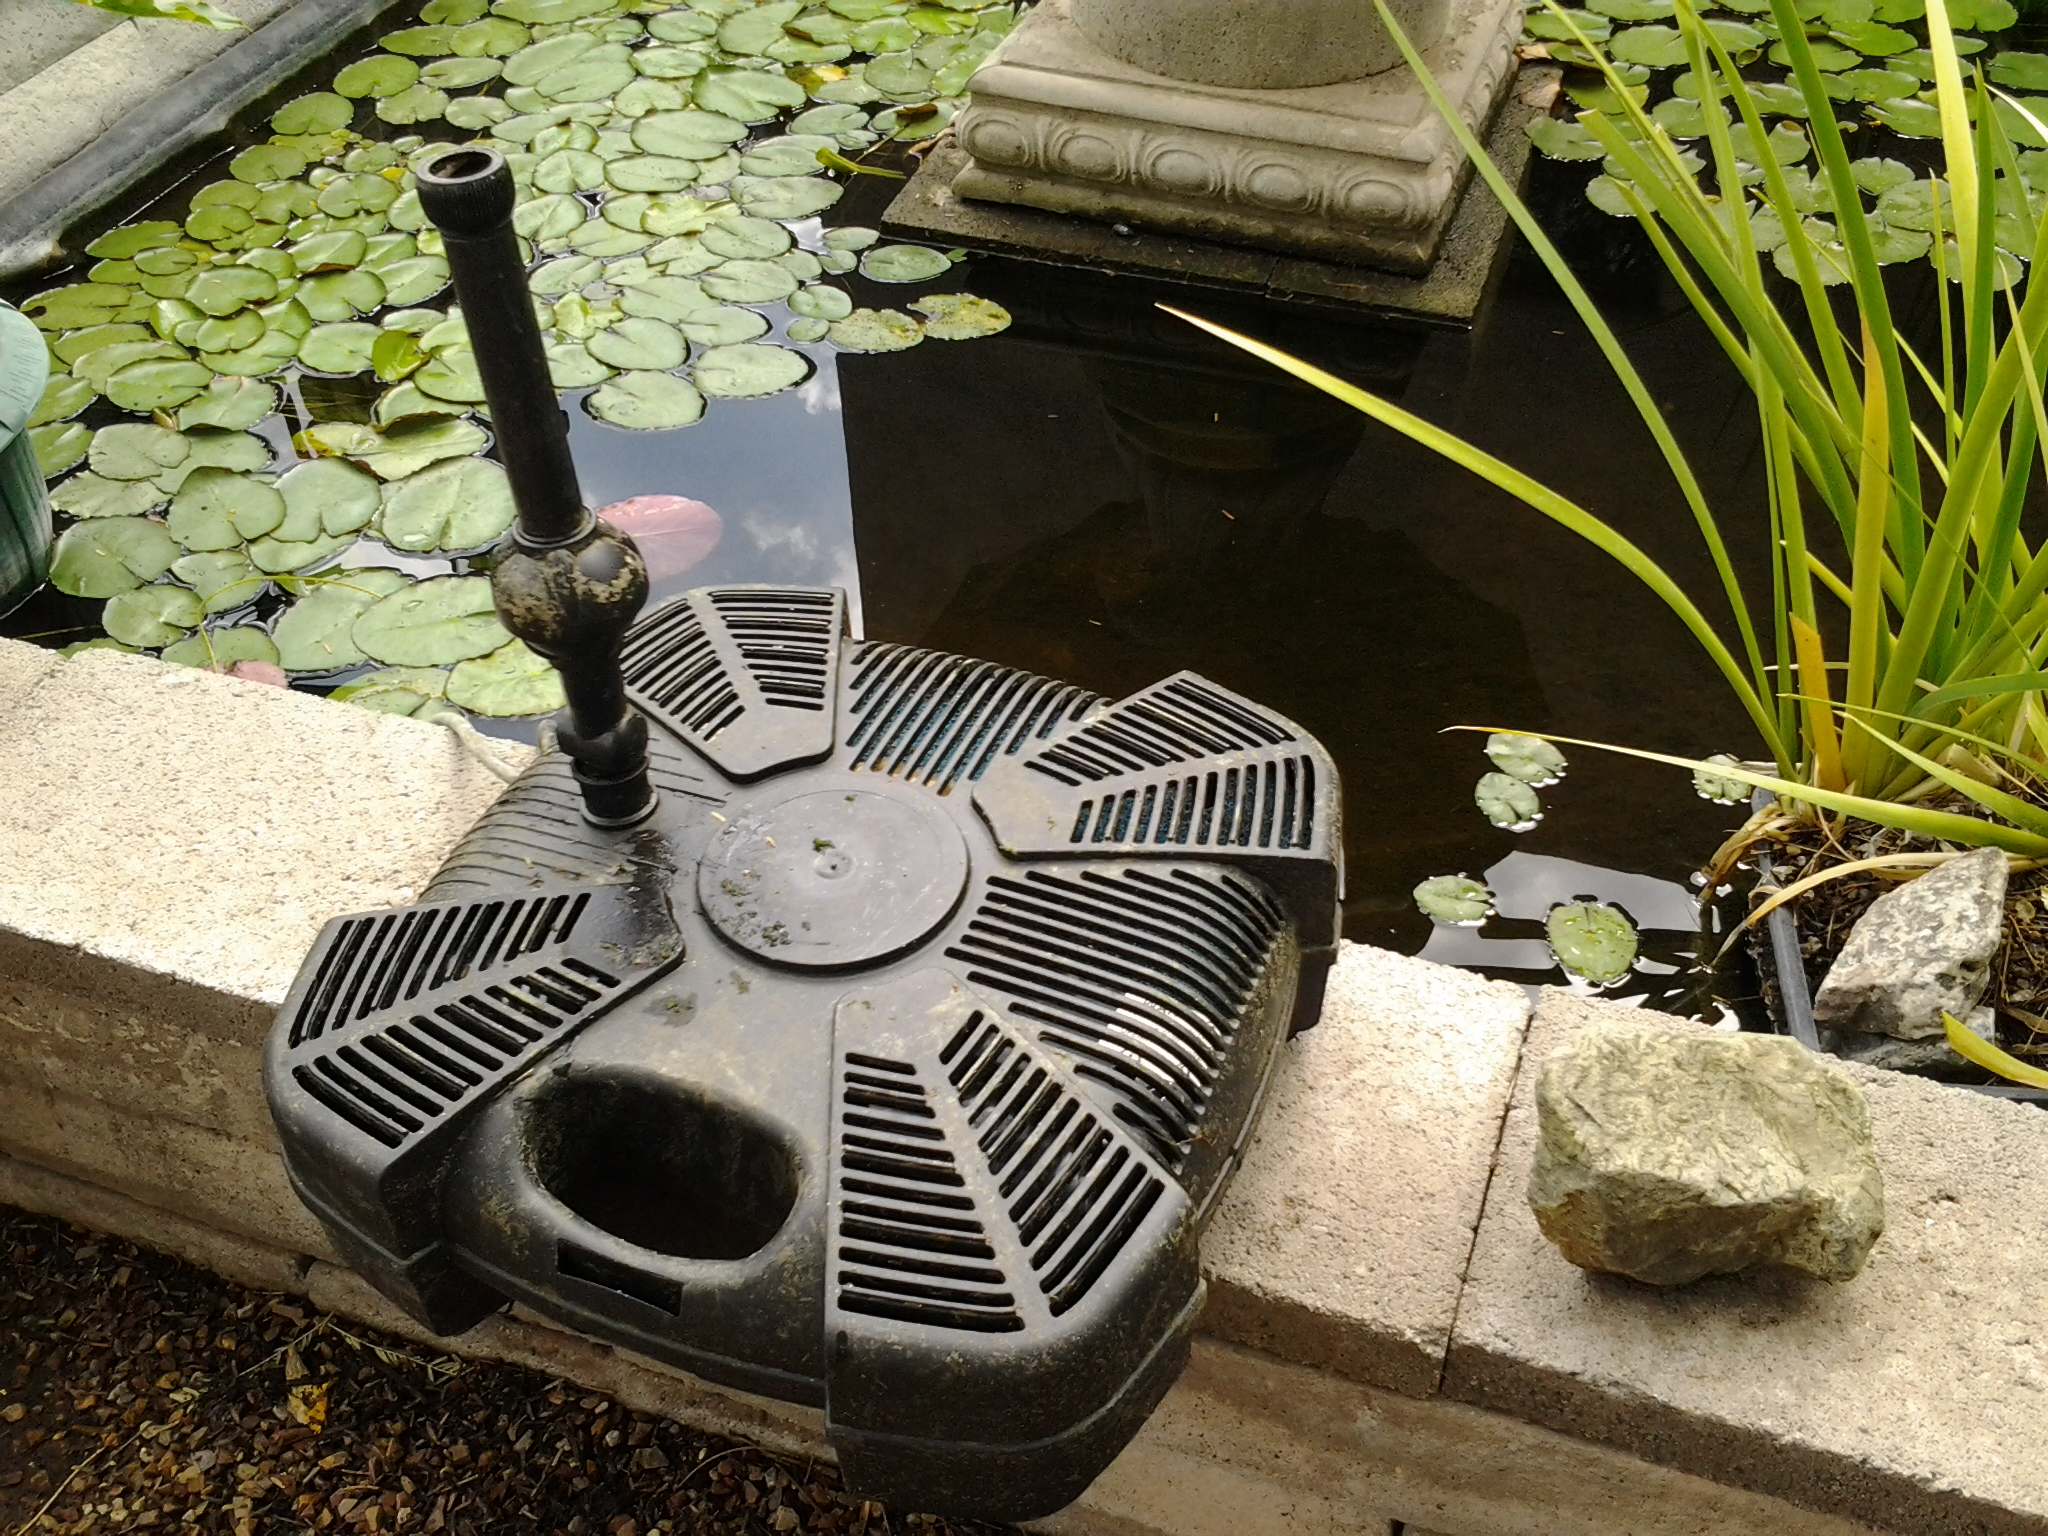 Best pond filter system all in one lifegard pump with uv for Best pond pumps